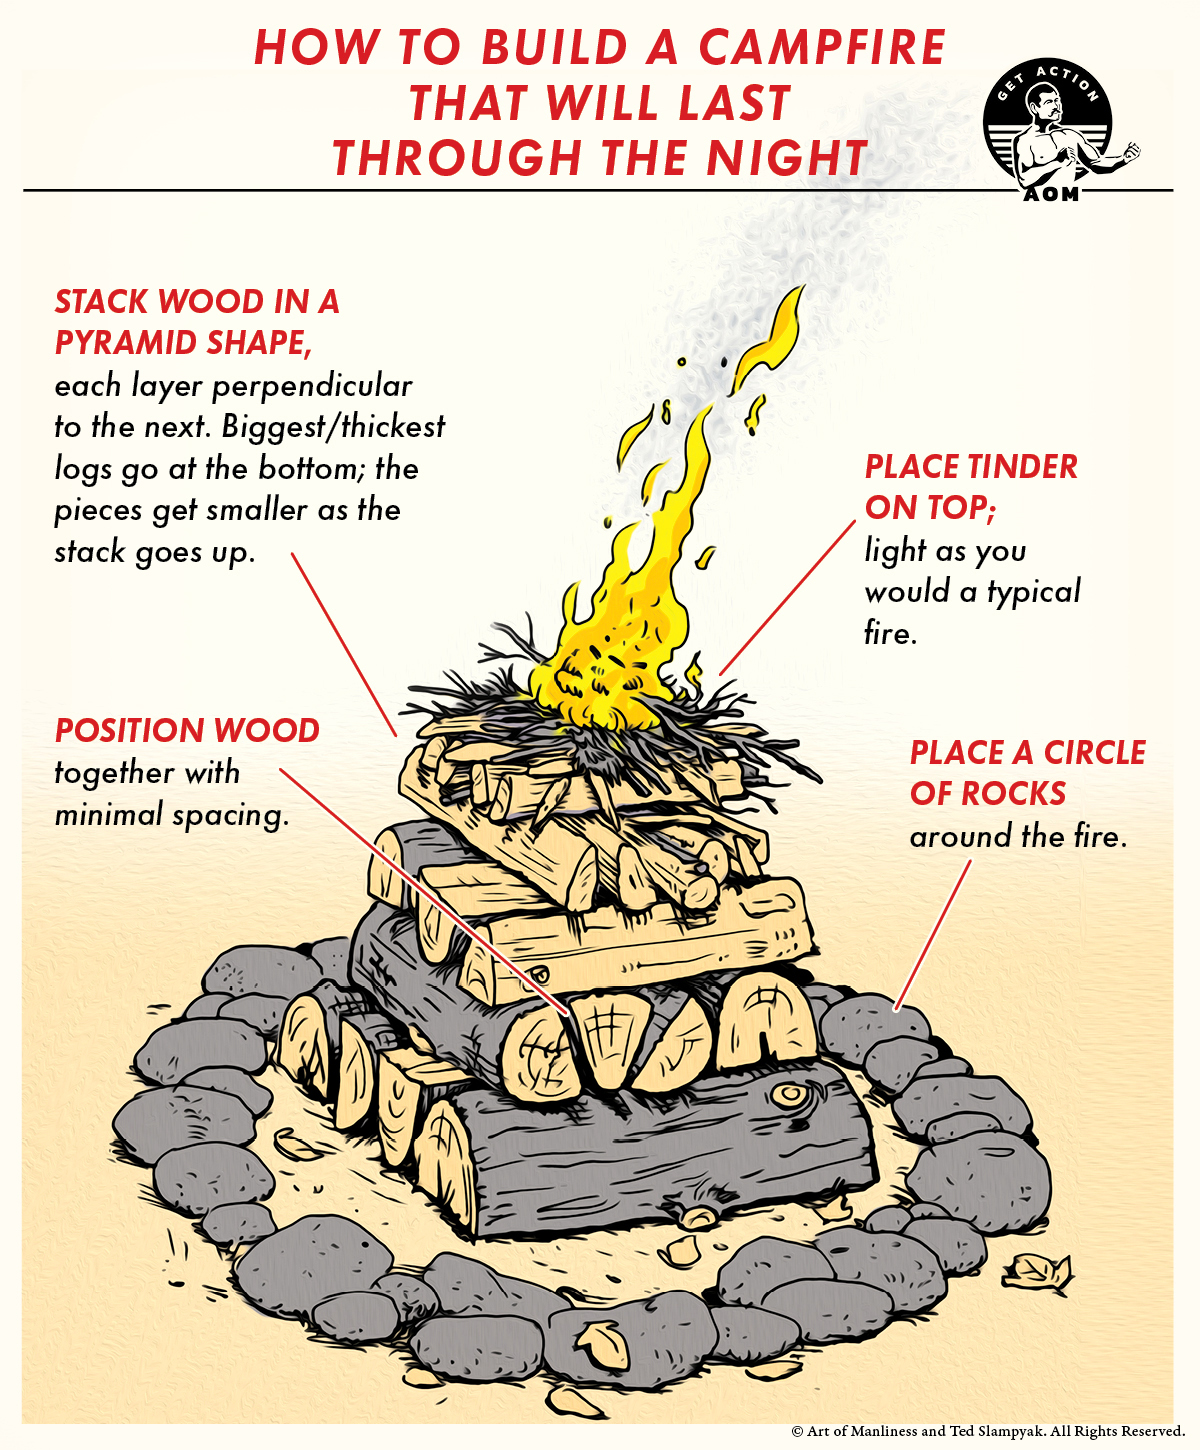 how to guide for building a campfire that will last the night illustration.